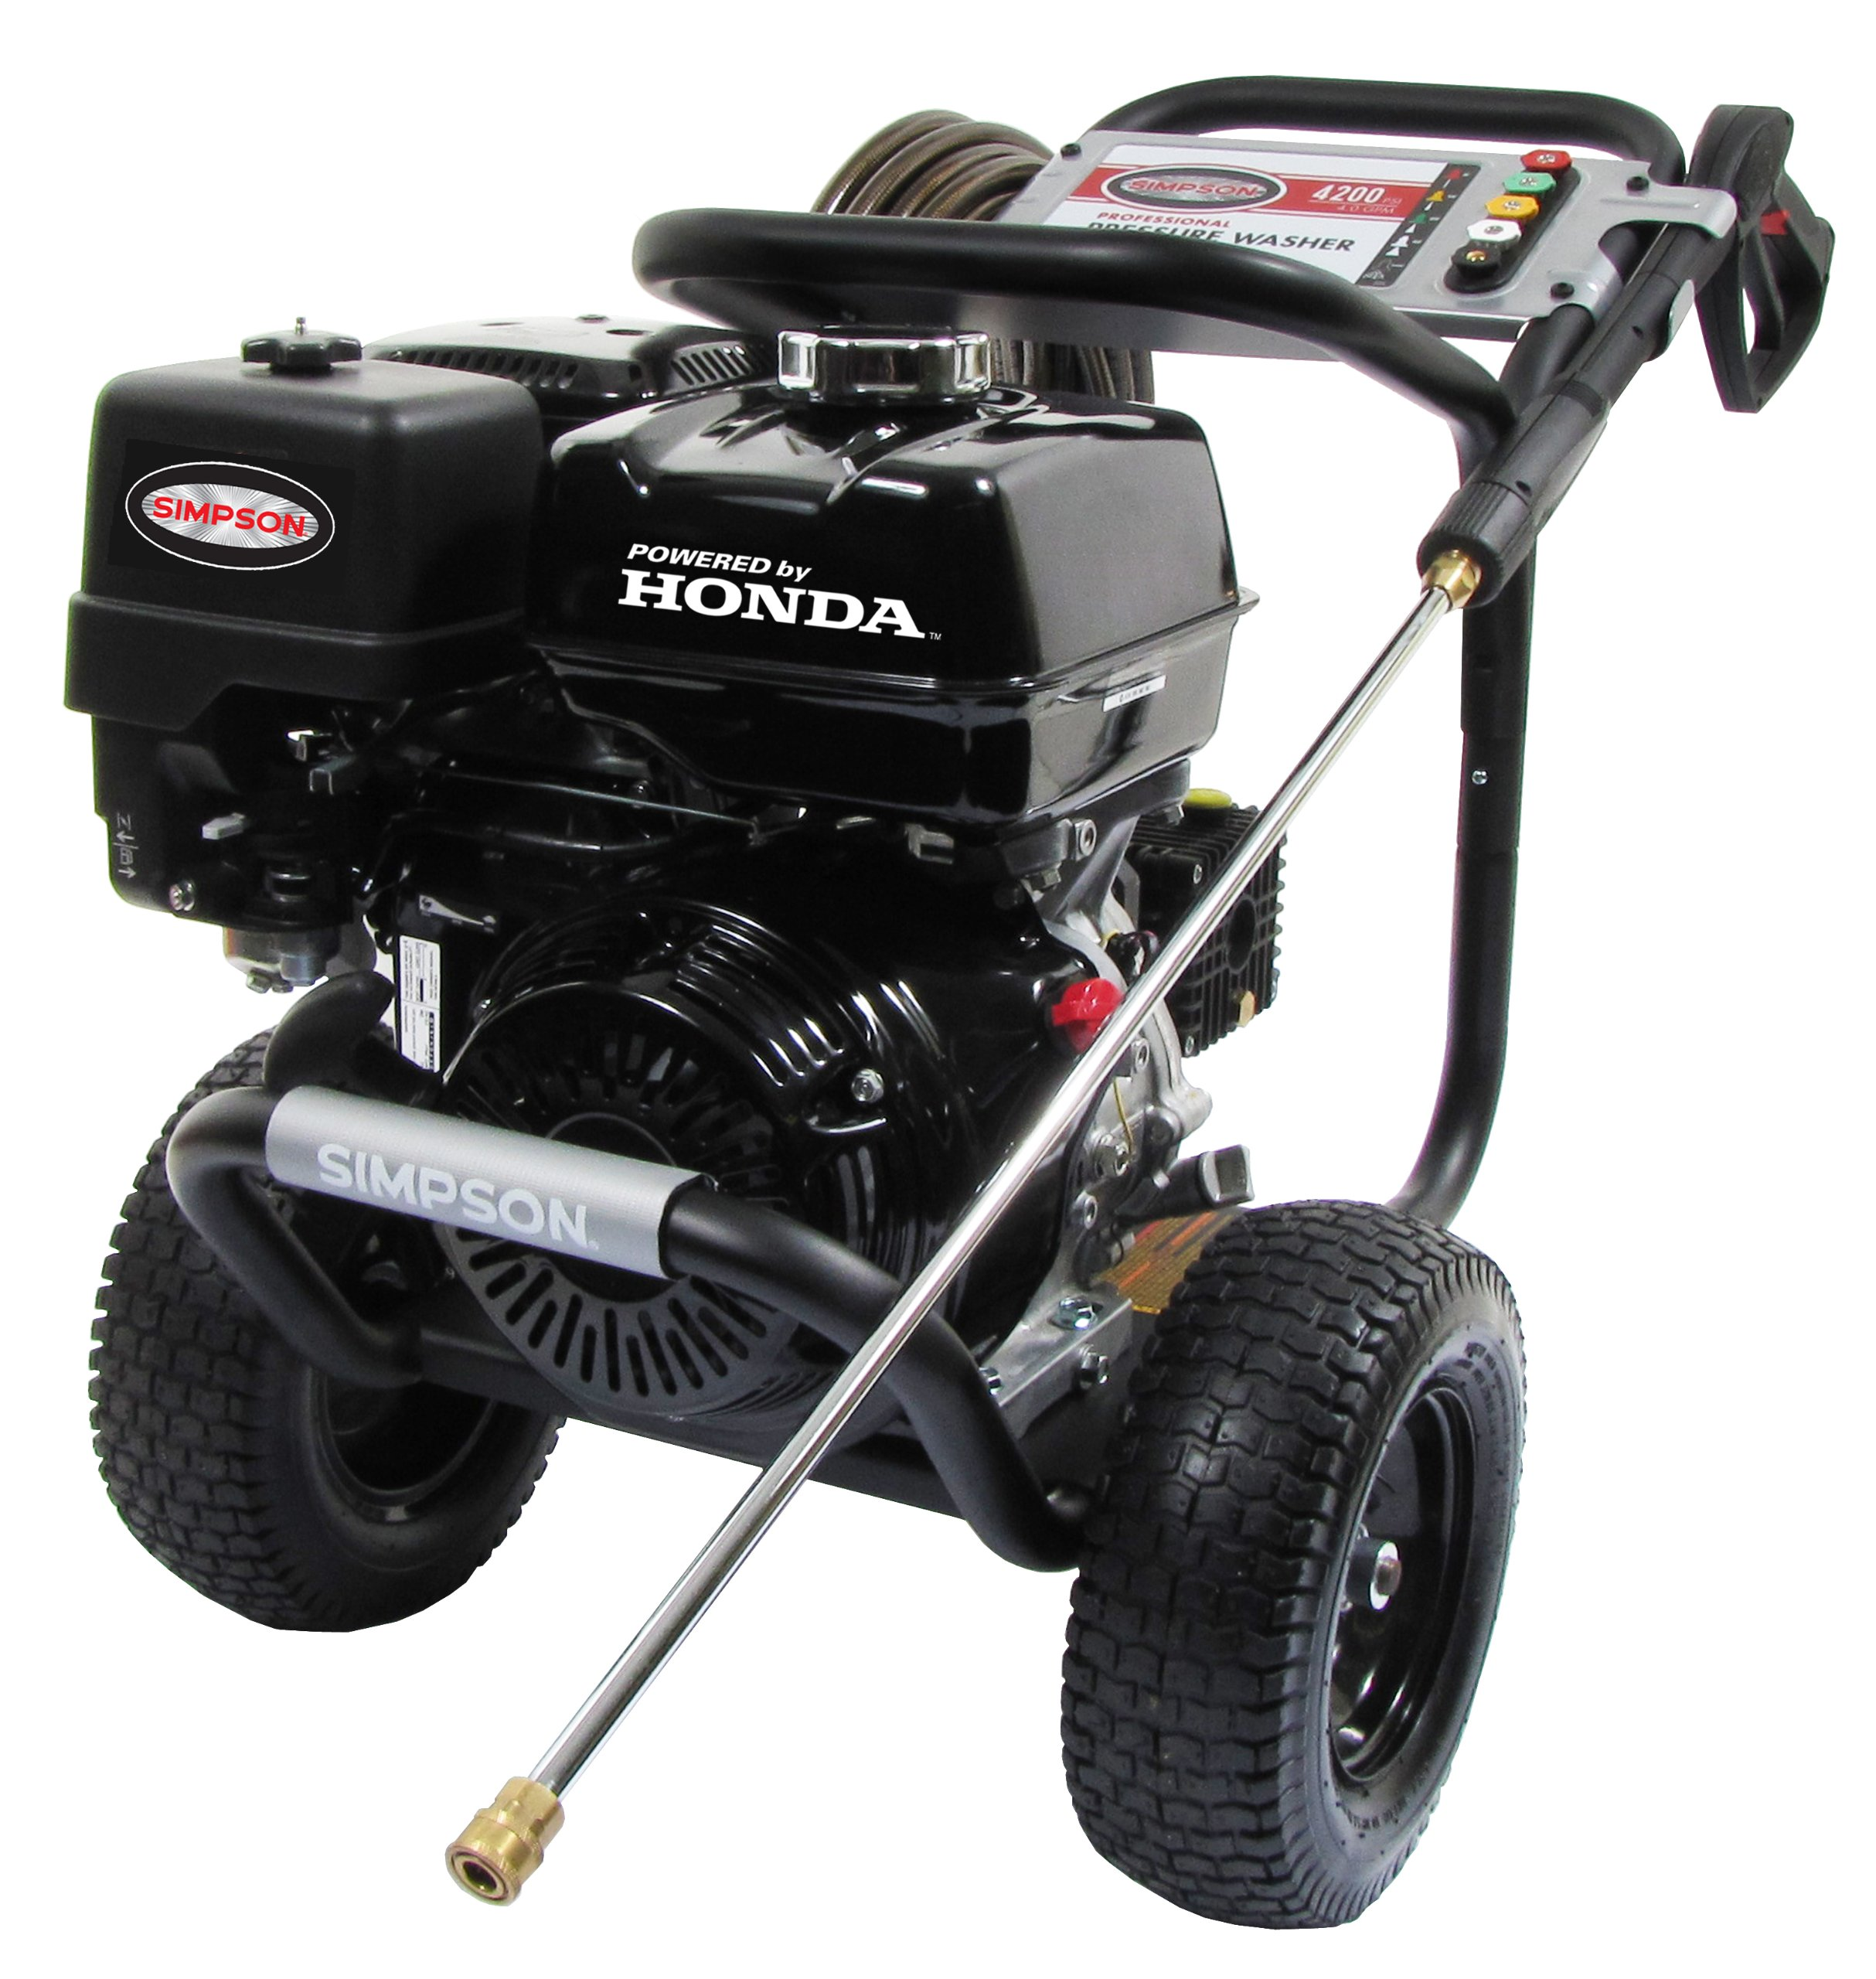 simpson-cleaning-ps4240h-4200-psi-4-gpm-gas-powered-honda-with-aaa-triplex-pump-best-commercial-pressure-washers-reviews